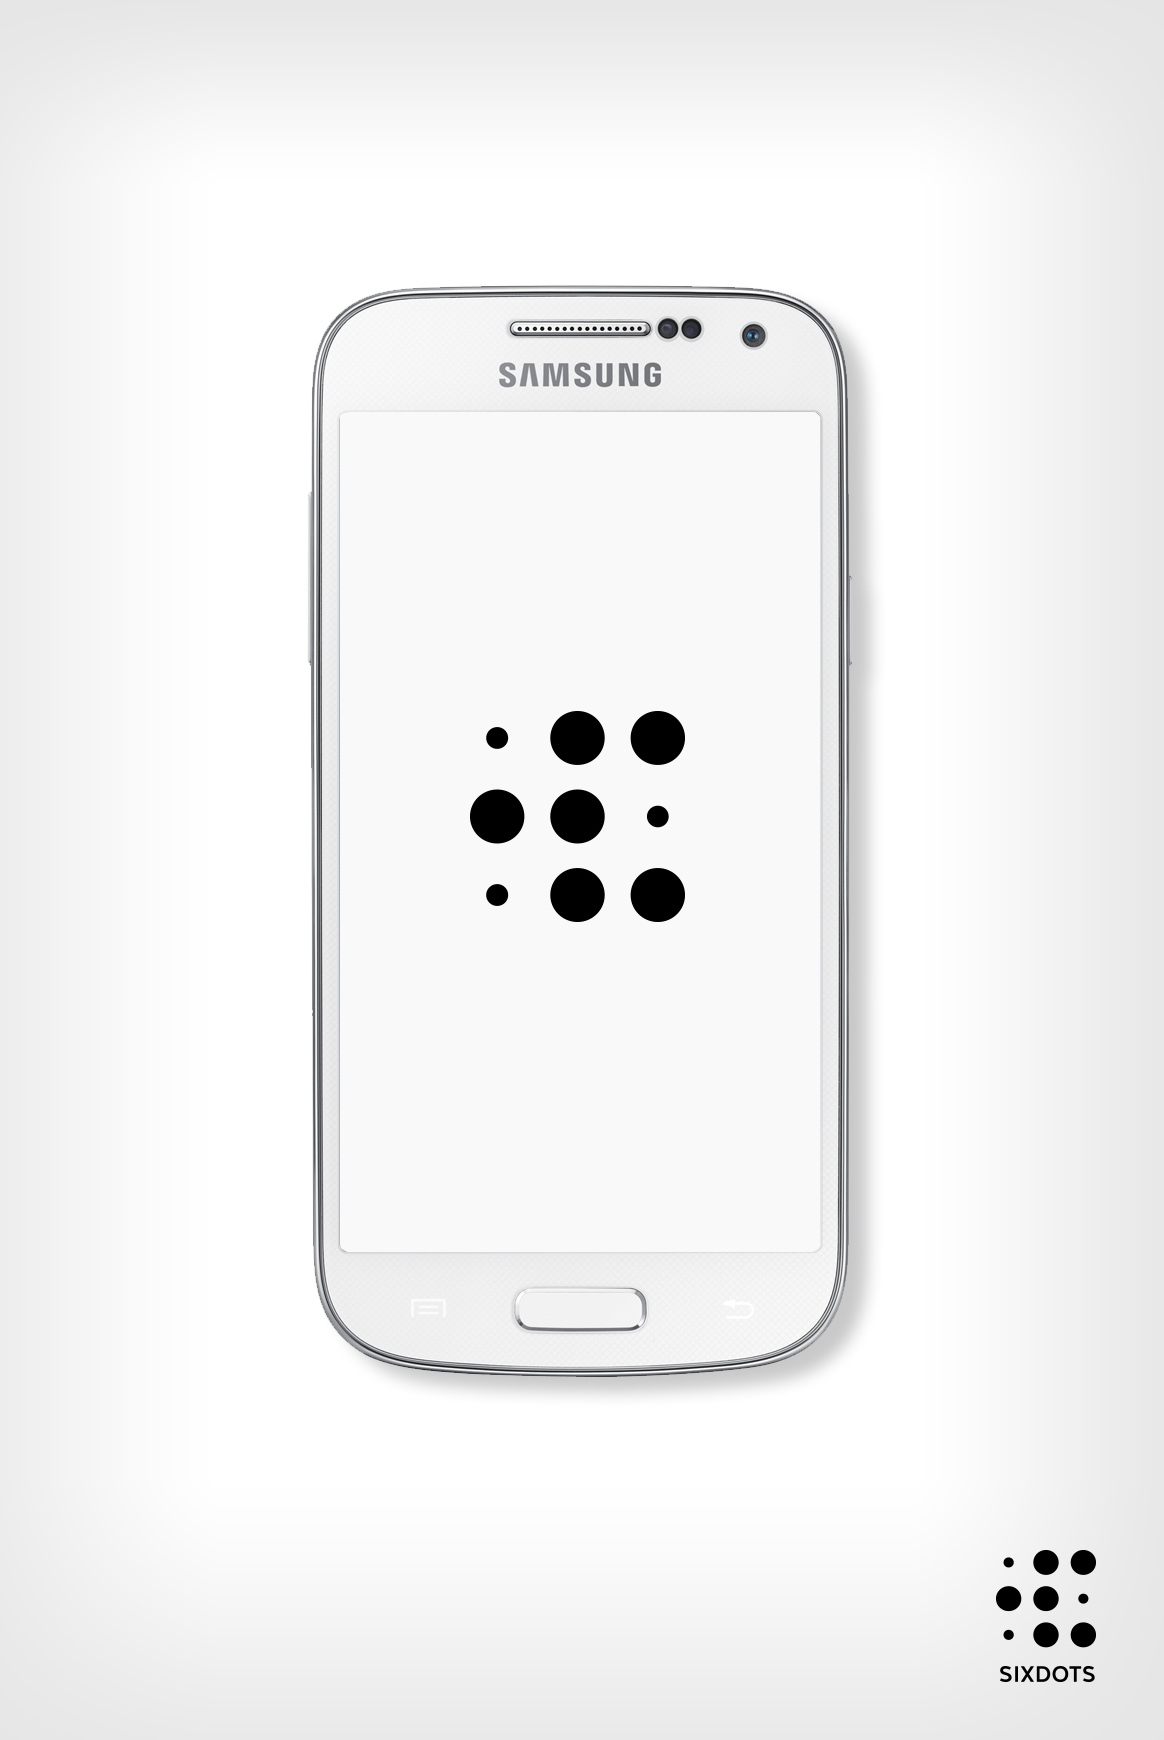 Sixdots Android